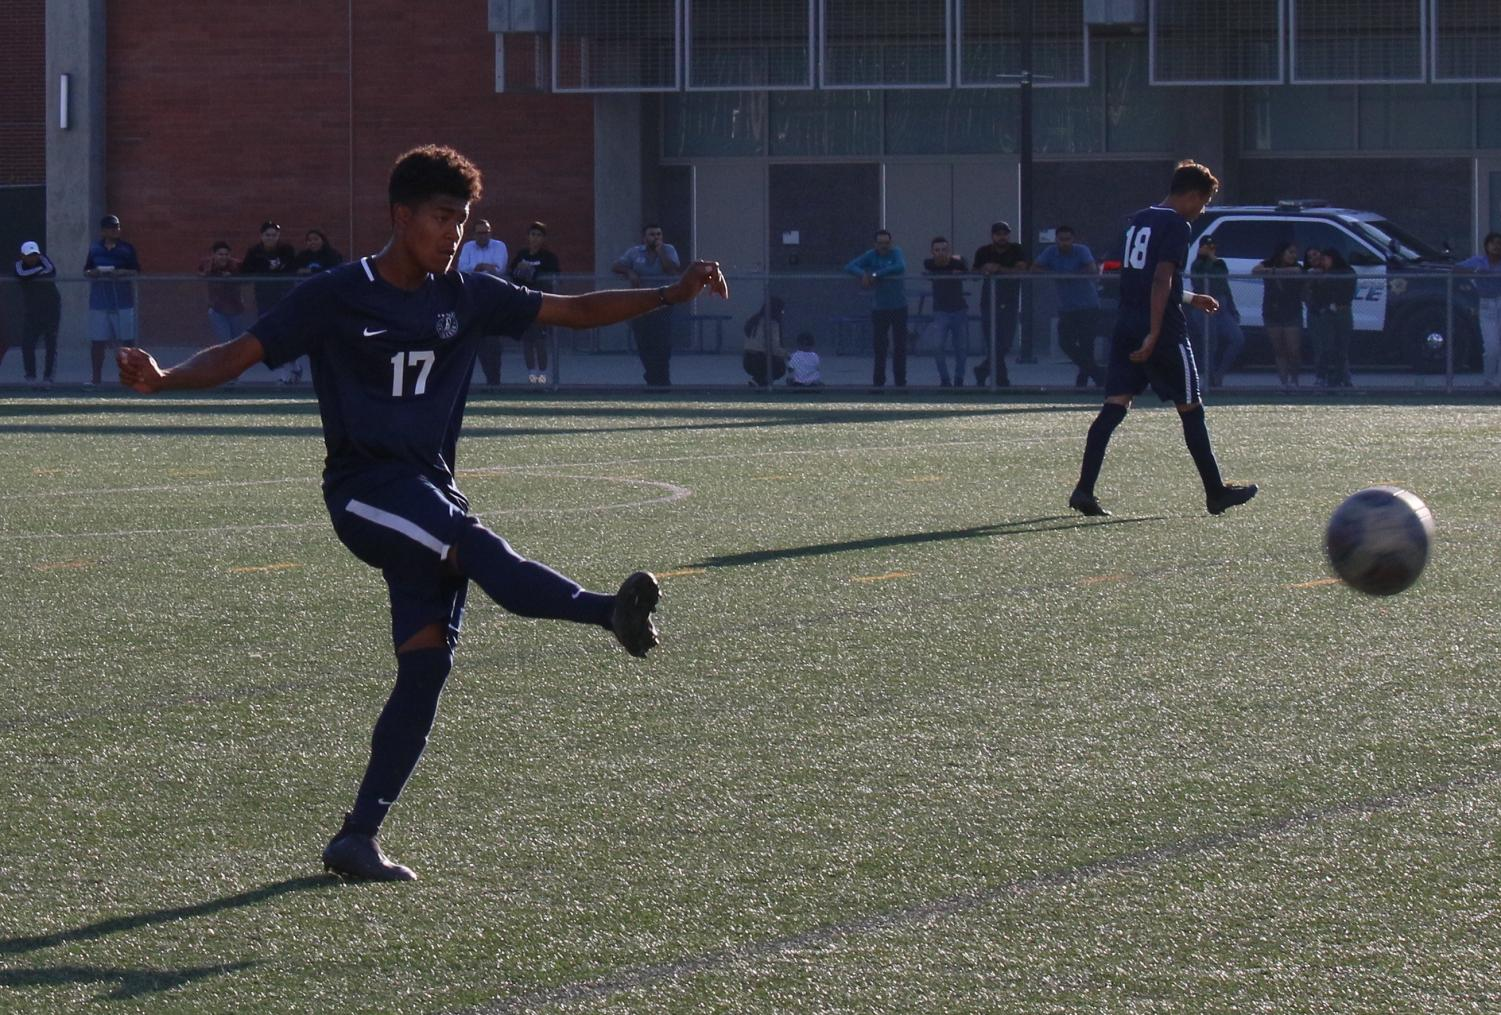 El Camino College defender Jordan Lopez-Perez clears the ball away from his penalty area during a match against Cerritos College at the PE and Athletics Field on Friday, Oct.11. Cerritos scored three goals to start the first half of the game. Viridiana Flores/ The Union